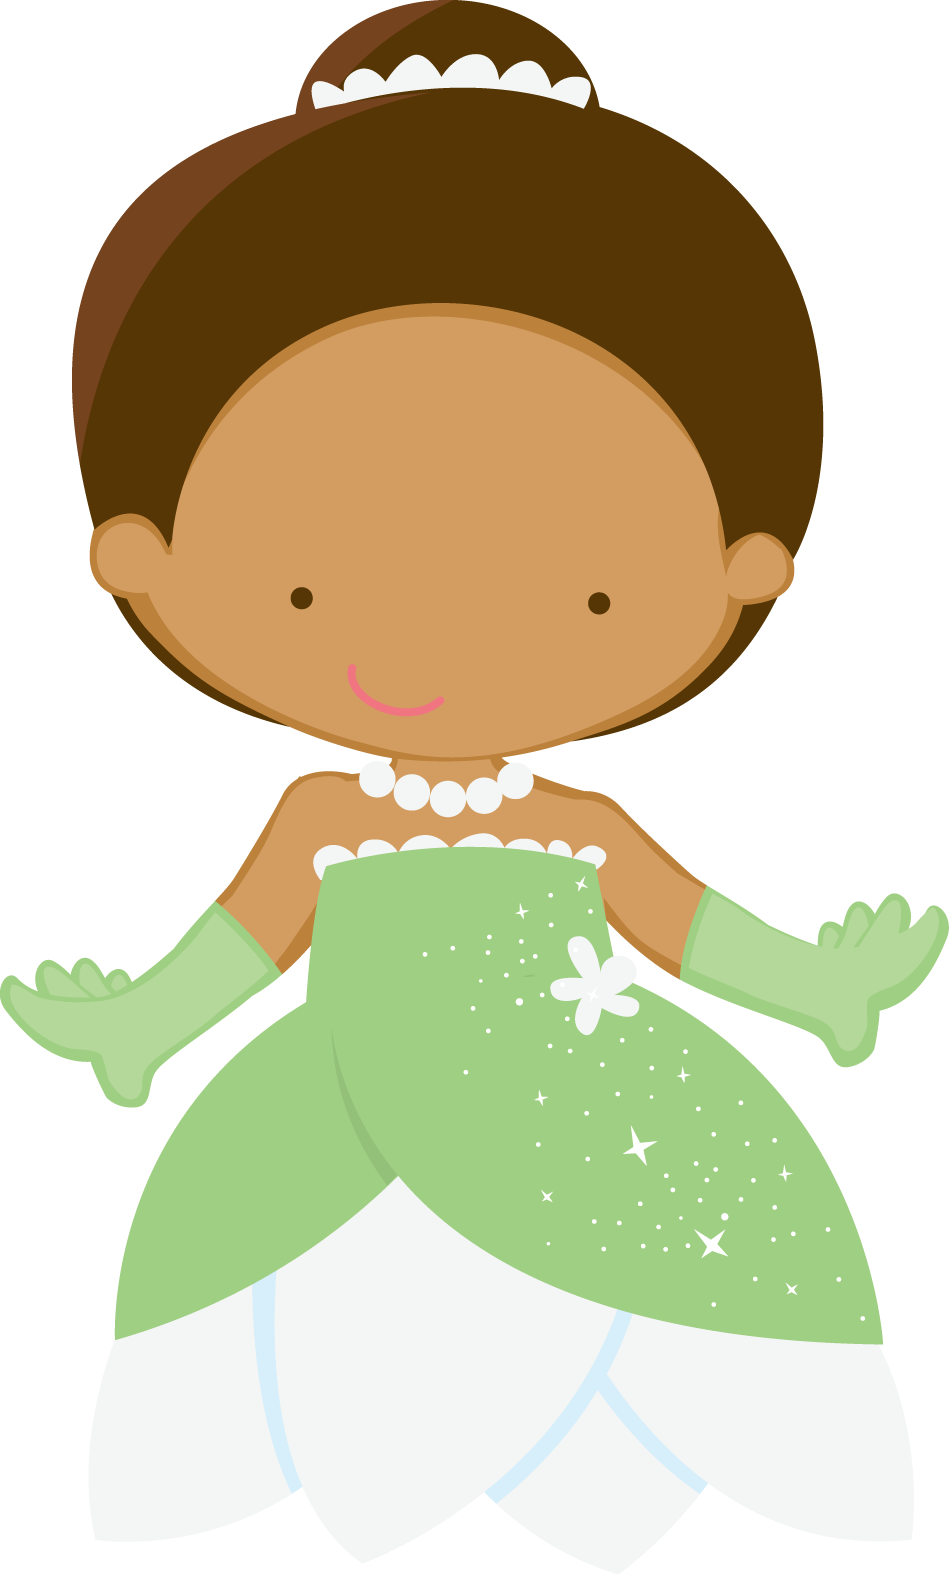 Princess Disney cutes II - ZWD_Princess_05.png - Minus | decoracao ...